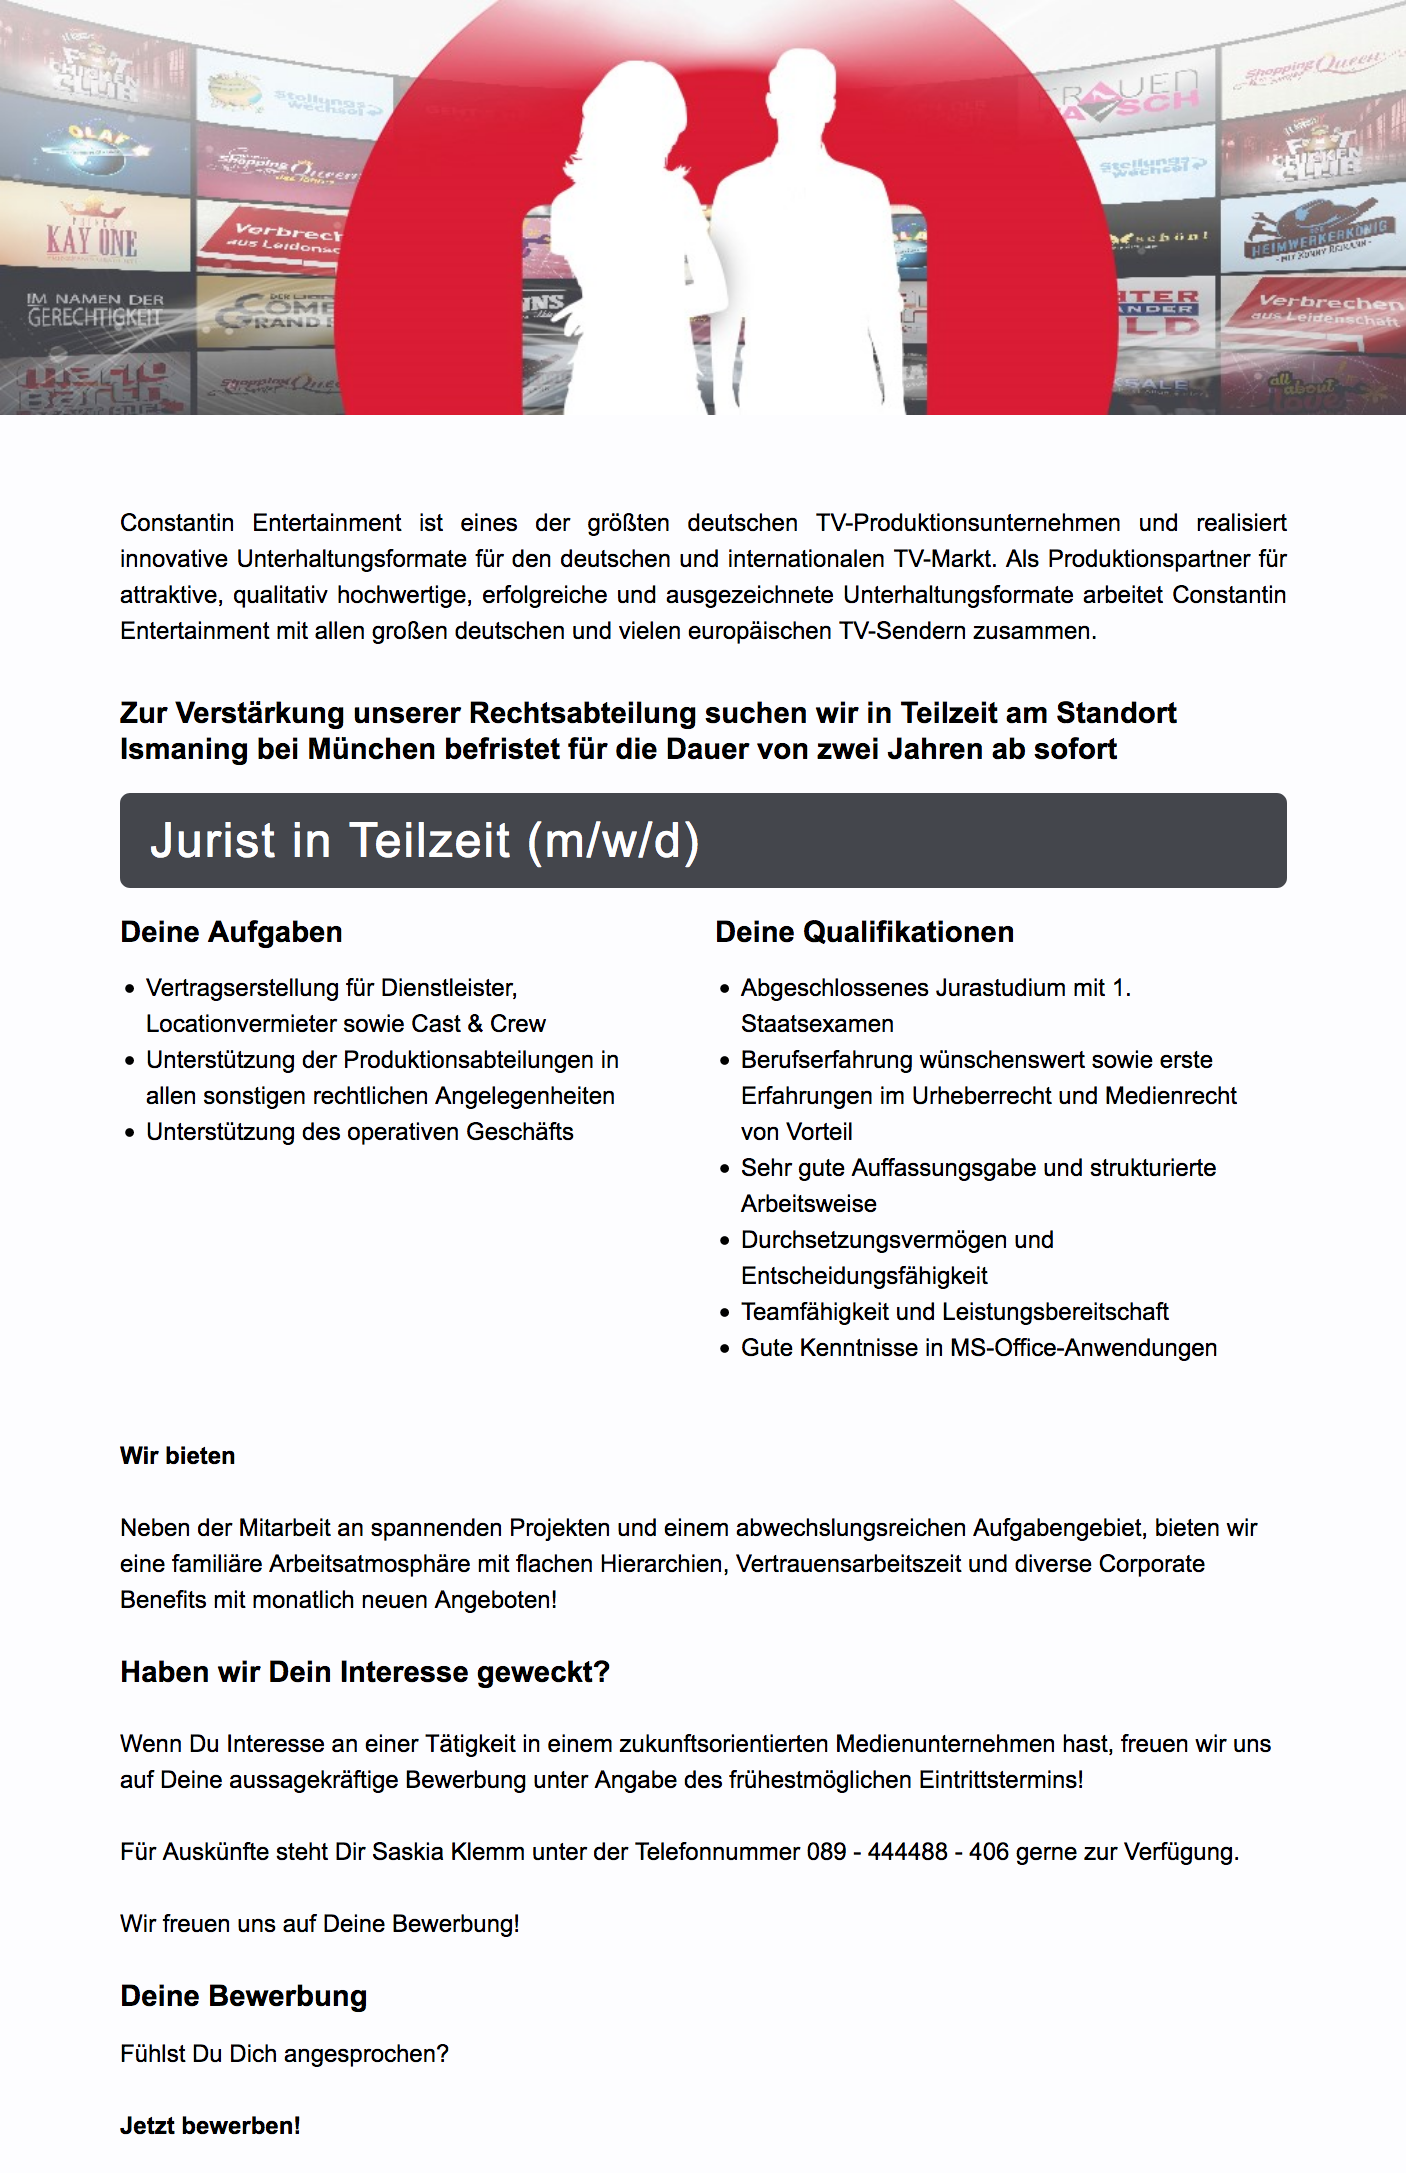 Jurist in Teilzeit (m/w/d)